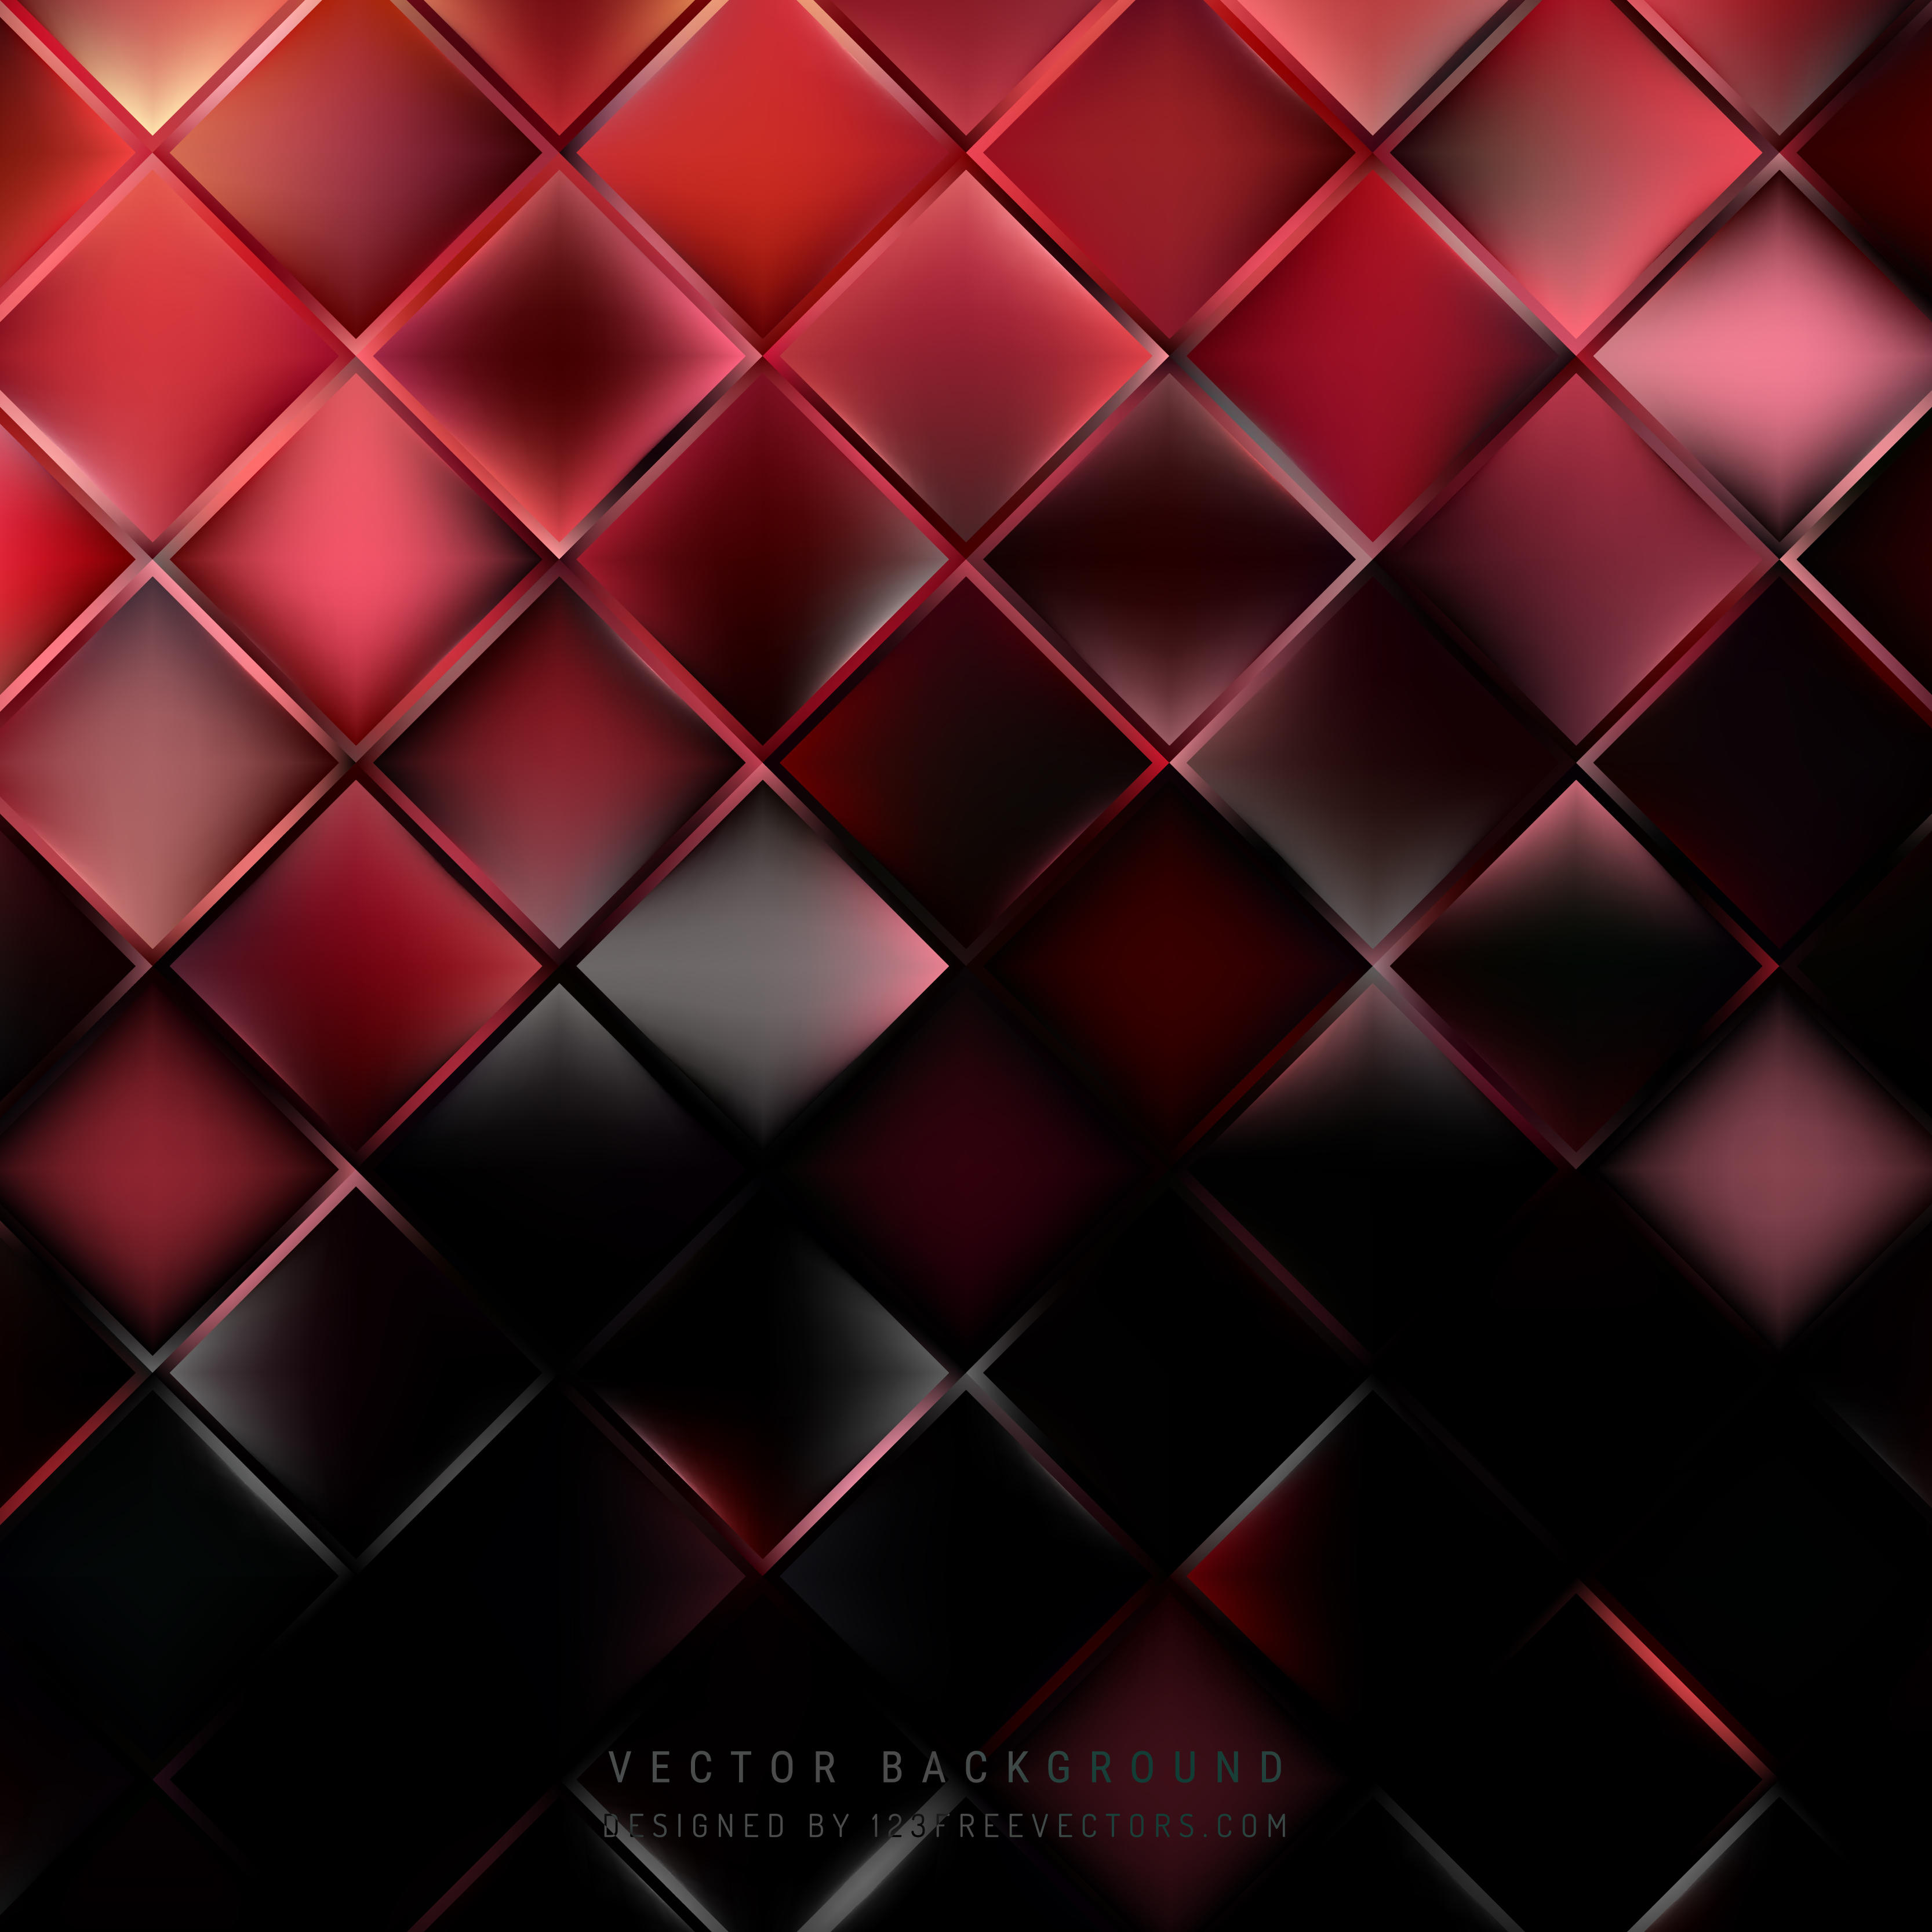 Black And Red >> Abstract Red Black Square Background Template